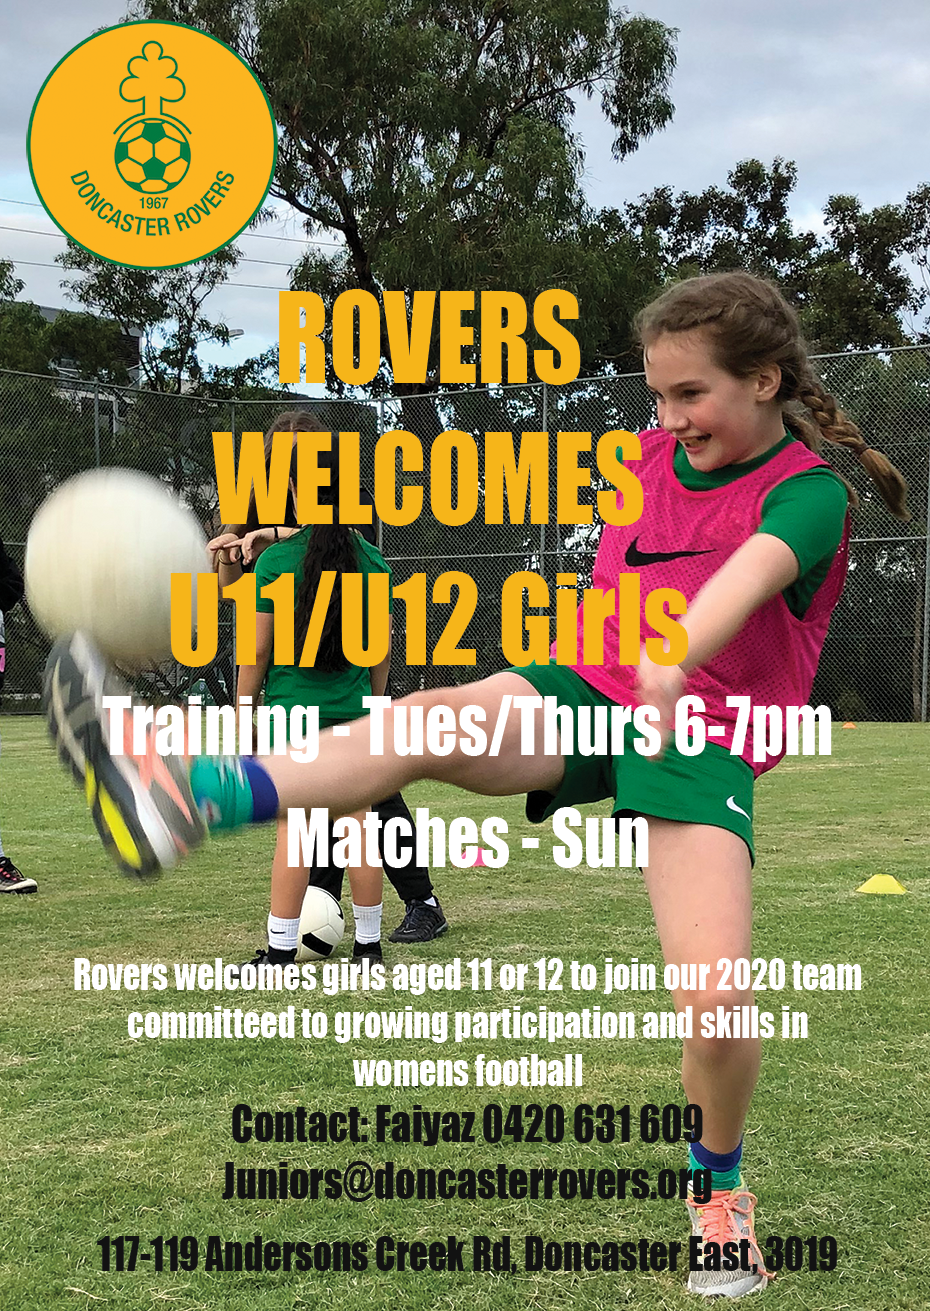 Rovers welcomes U12 girls